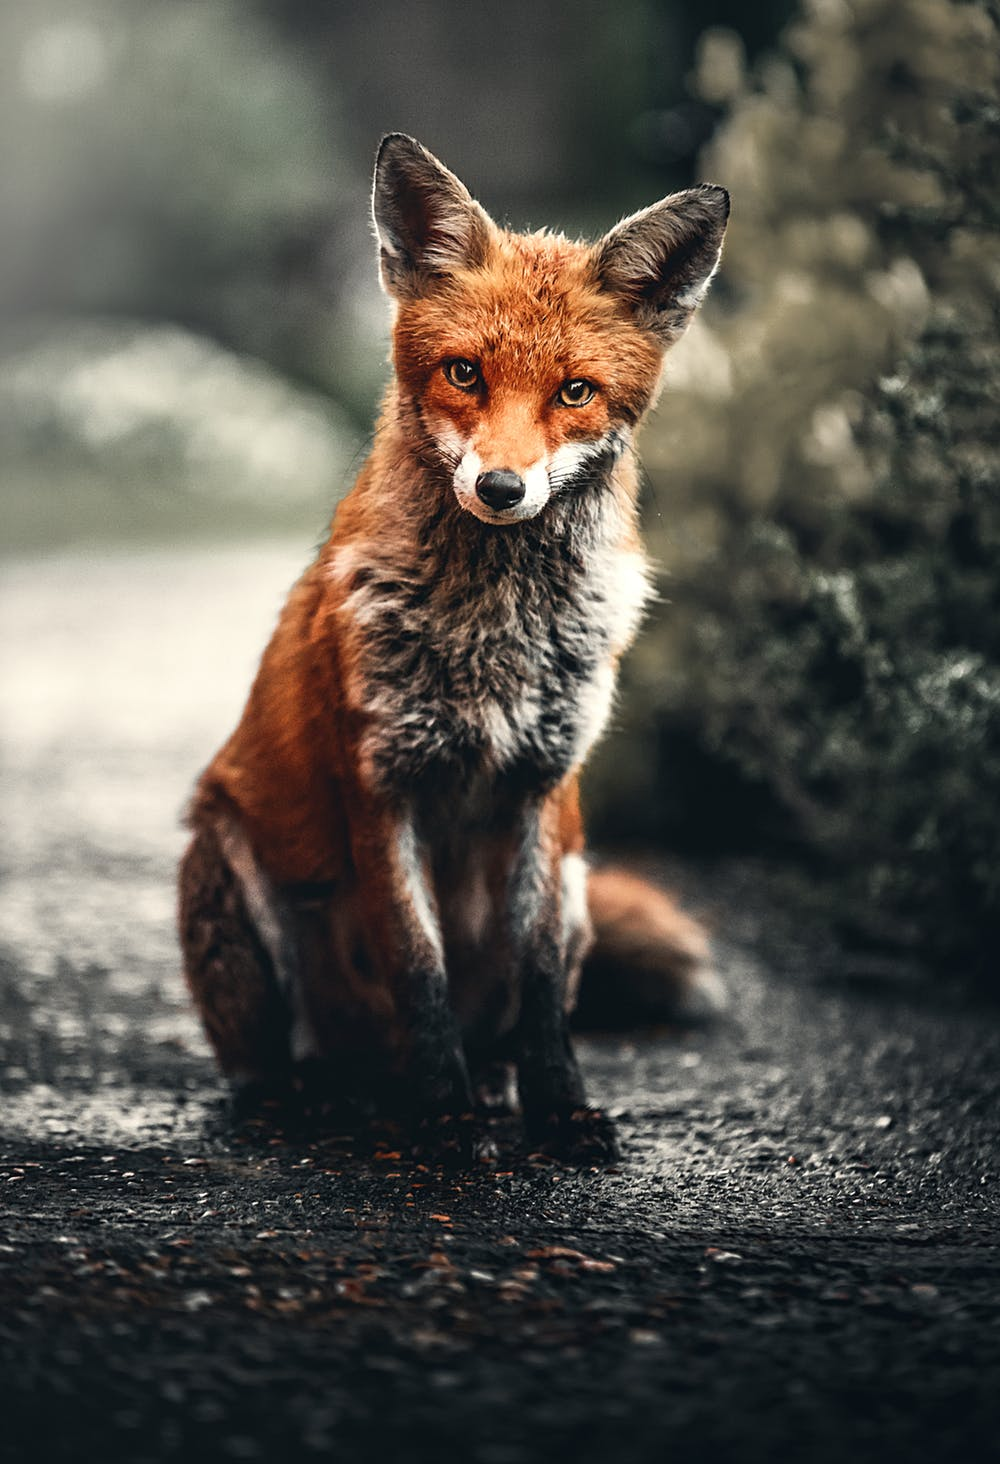 a fox sitting in the road